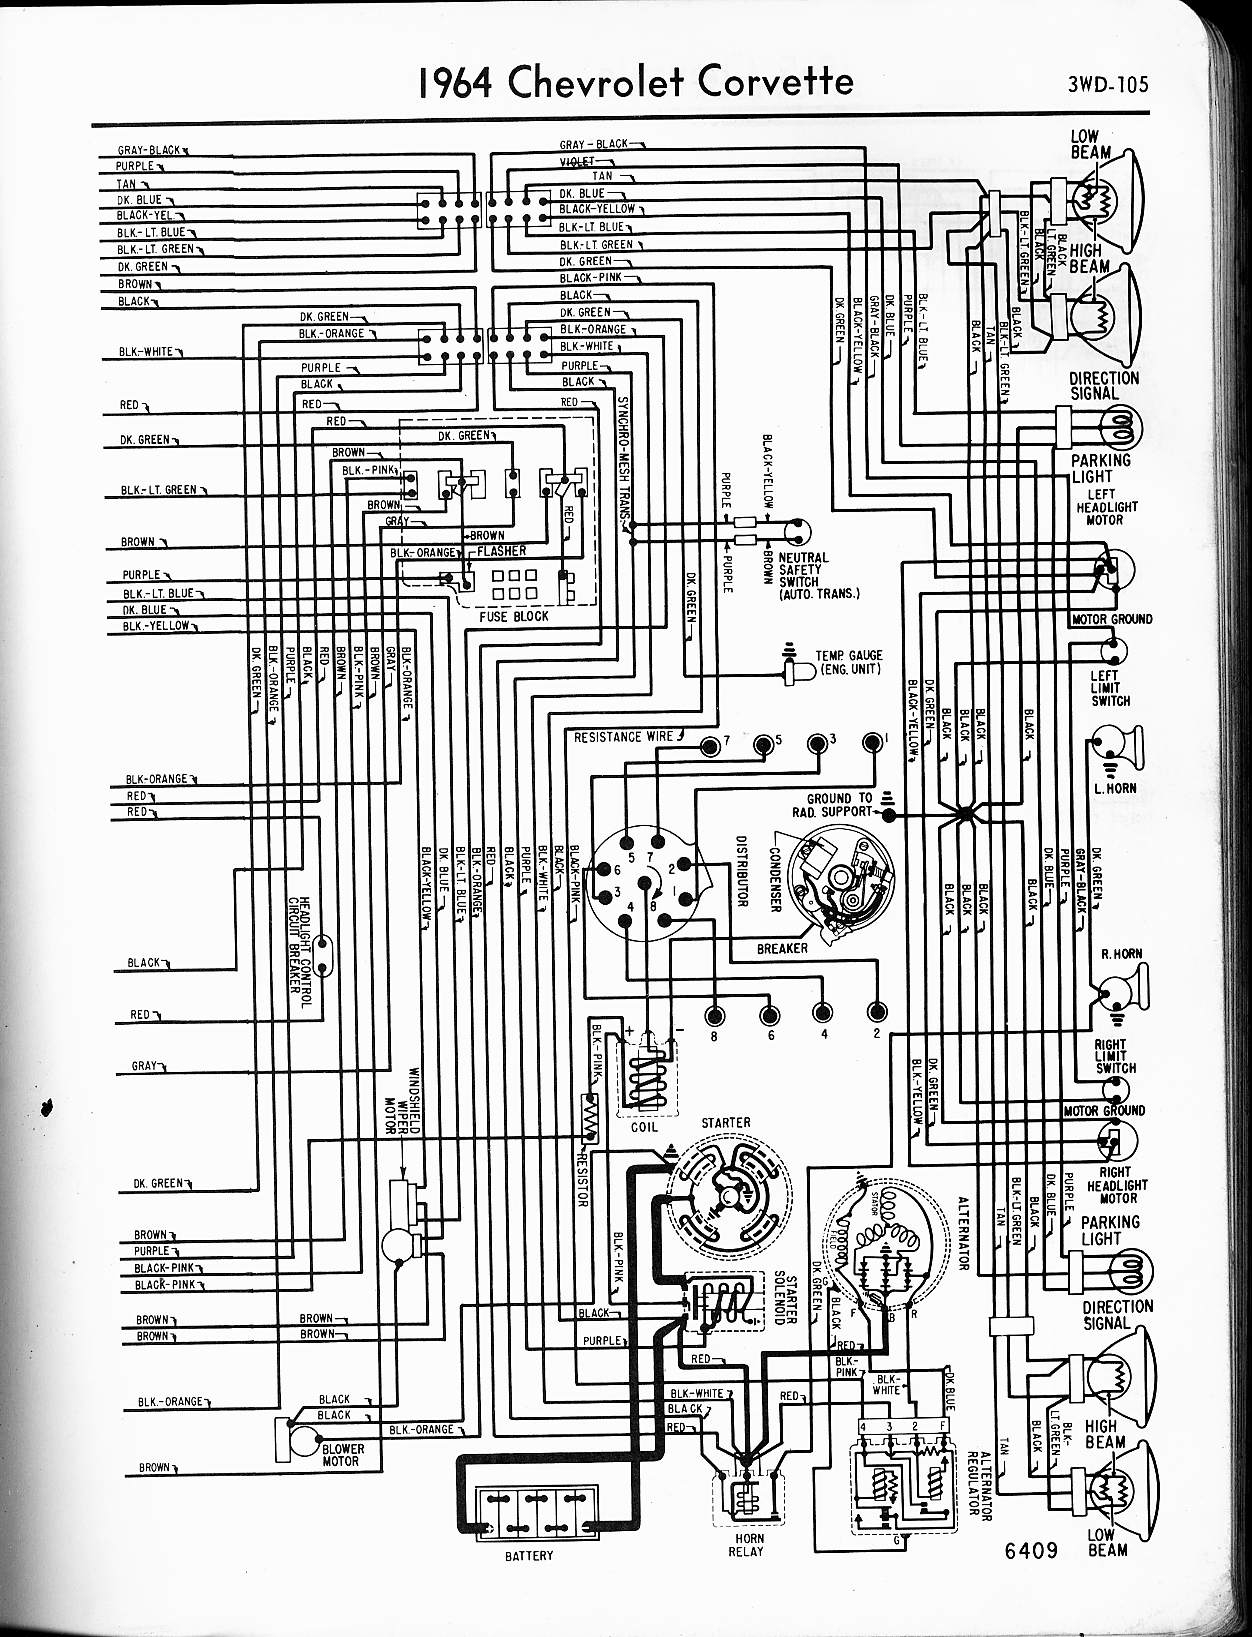 DIAGRAM] 64 Impala Ignition Switch Wiring Diagram FULL Version HD Quality Wiring  Diagram - A2SC2625SCHEMATIC7012.NINIE-CUPCAKES.FRNinie Cupcakes